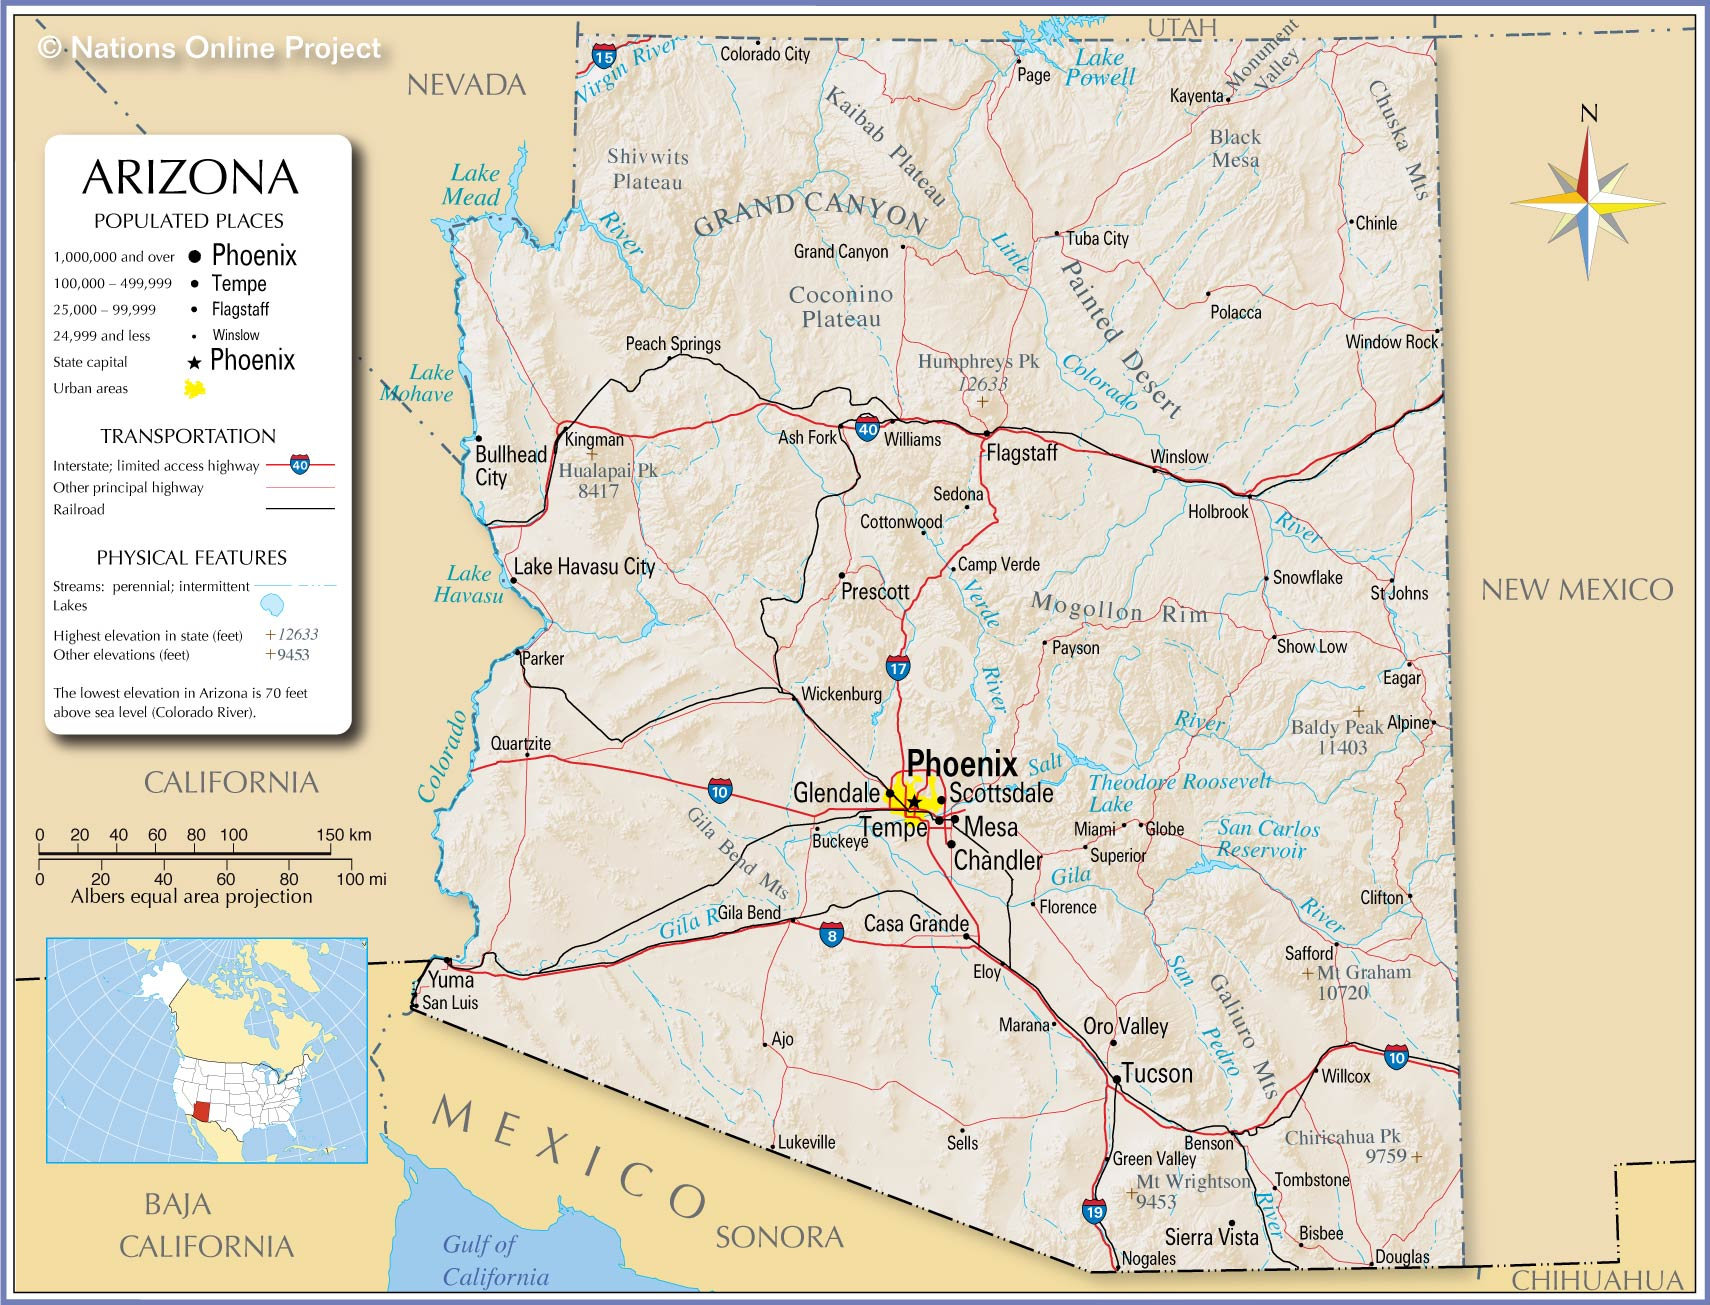 Reference Map Of Arizona USA Nations Online Project - City map of arizona